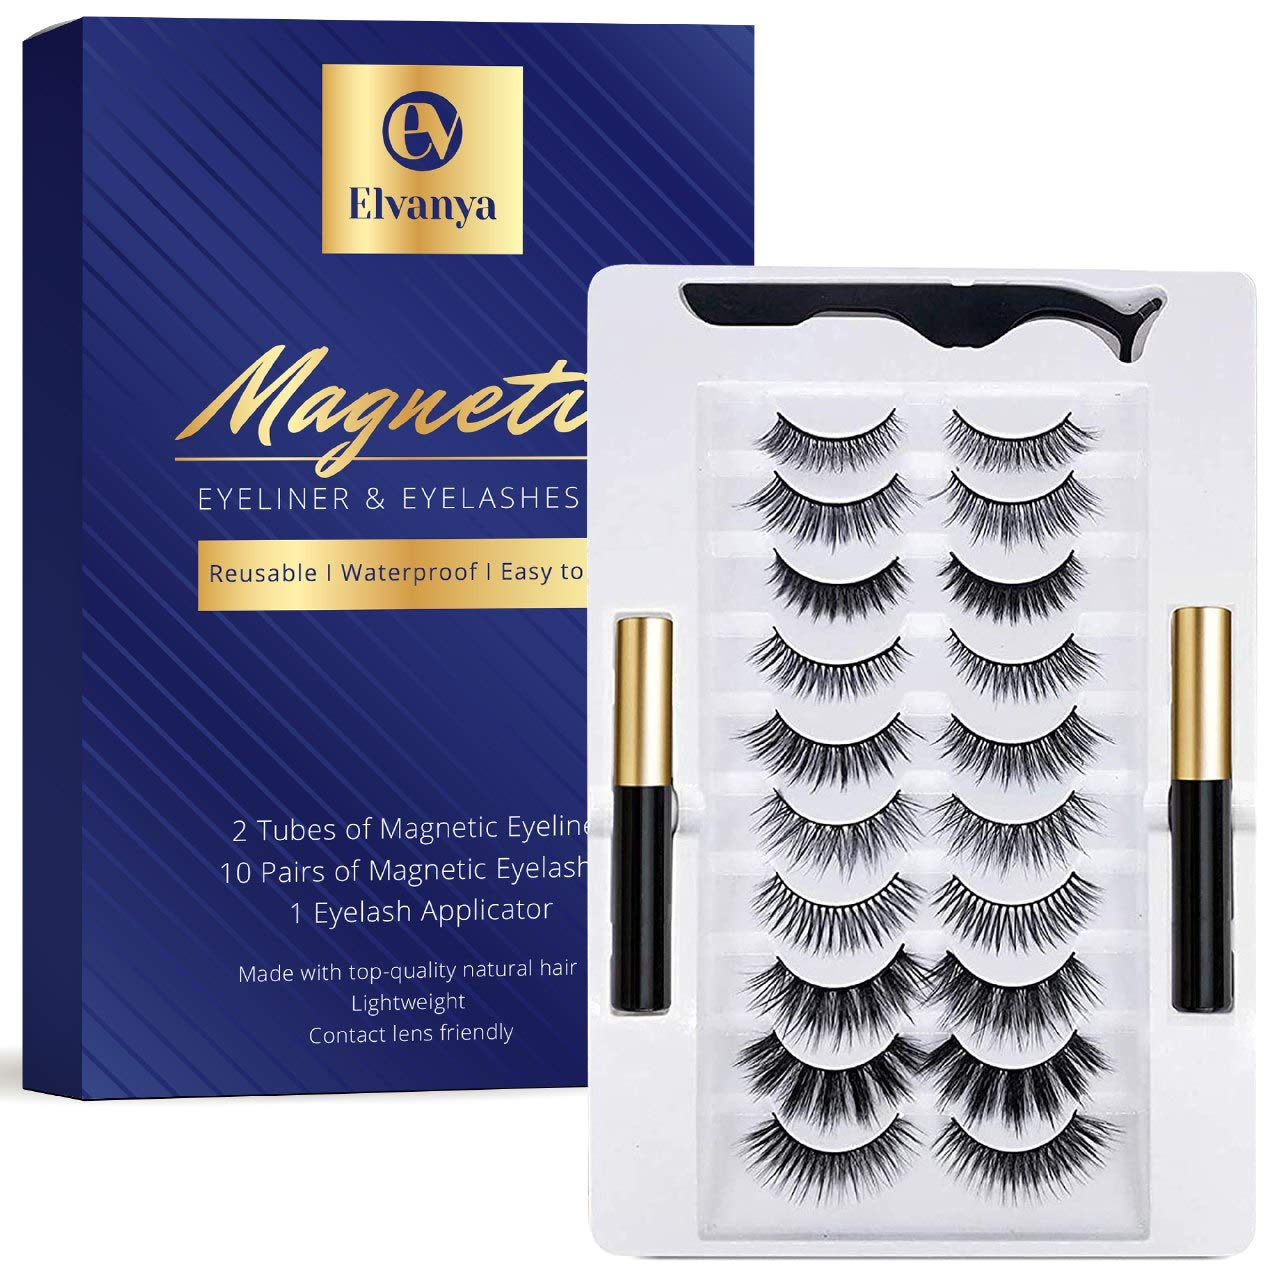 Free Amazon Promo Code 2020 for Magnetic Eyeliner and Lashes Magnetic